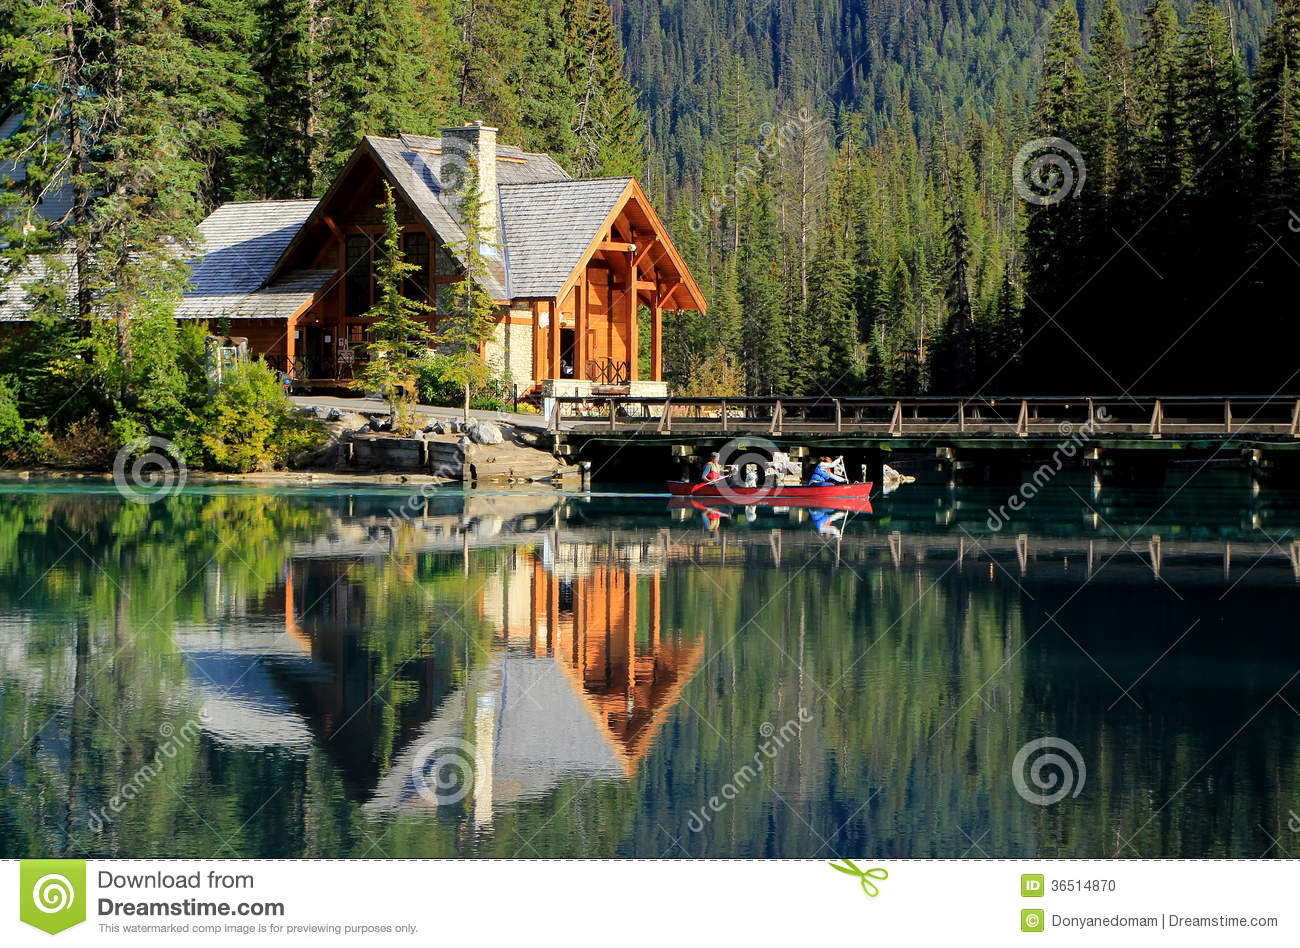 Maison en bois chez emerald lake yoho national park canada photo stock image 36514870 for Photo de maison au canada